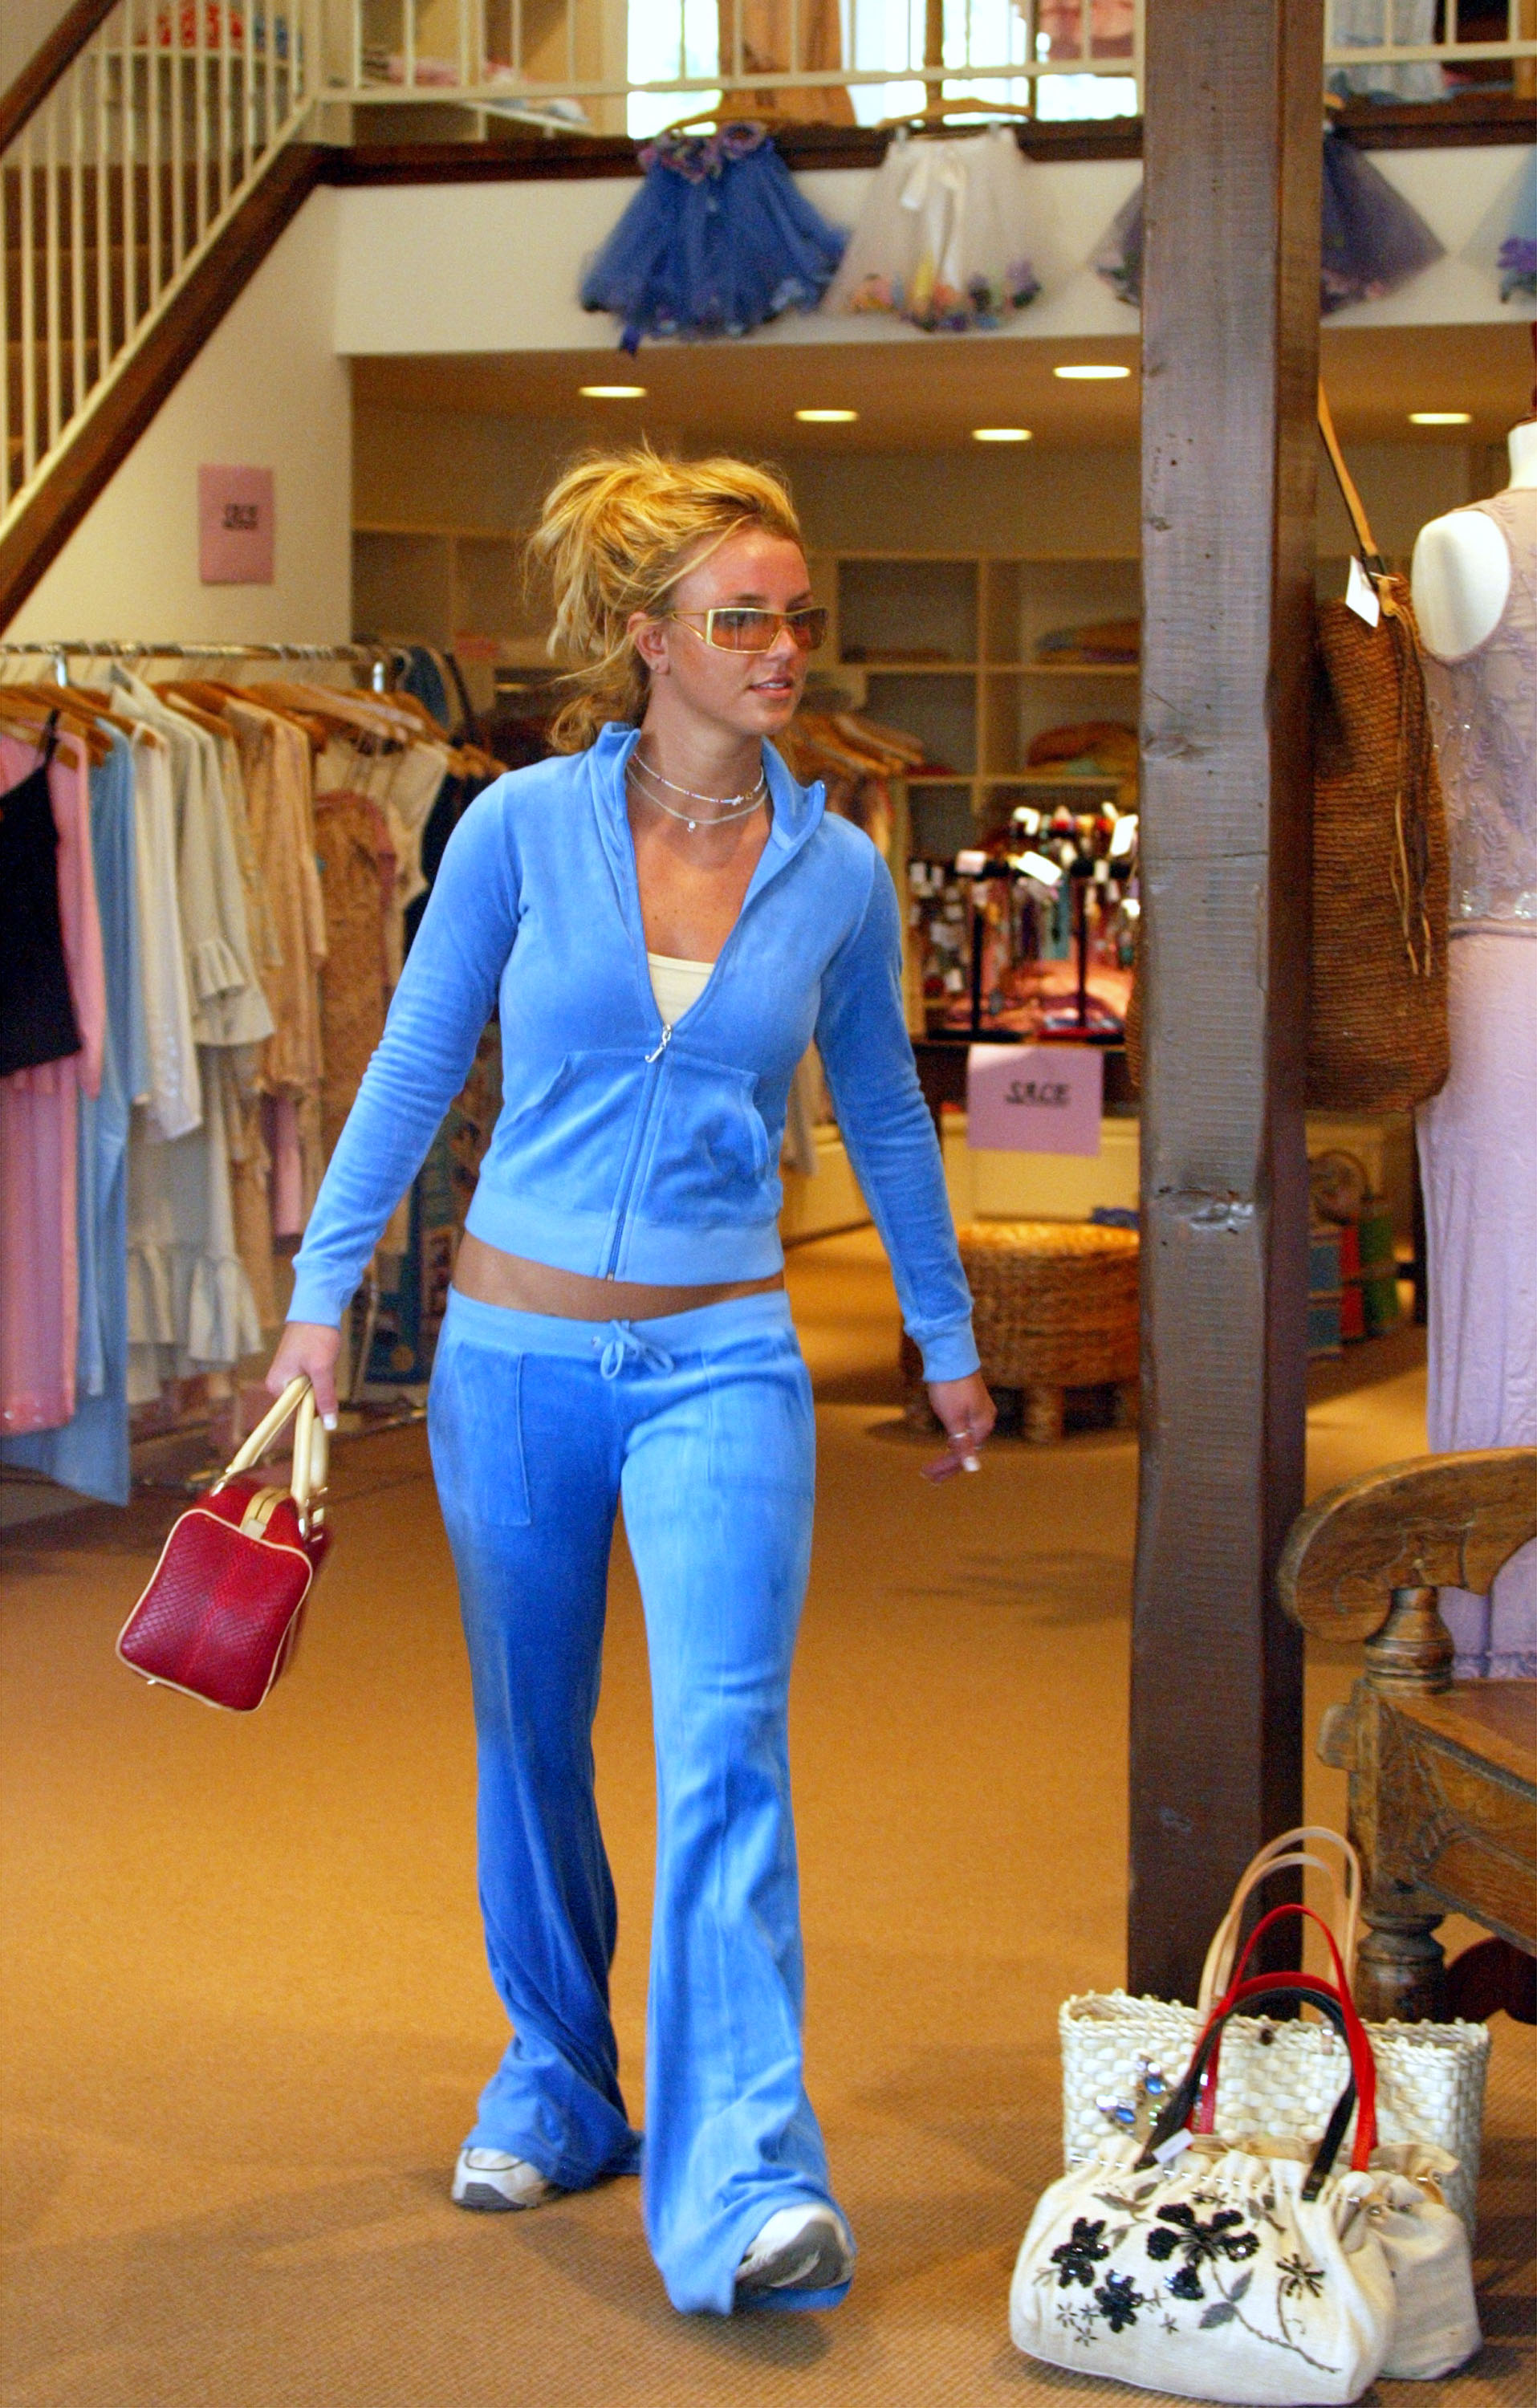 40 Pop Star Outfits That Defined the 2000s, Including